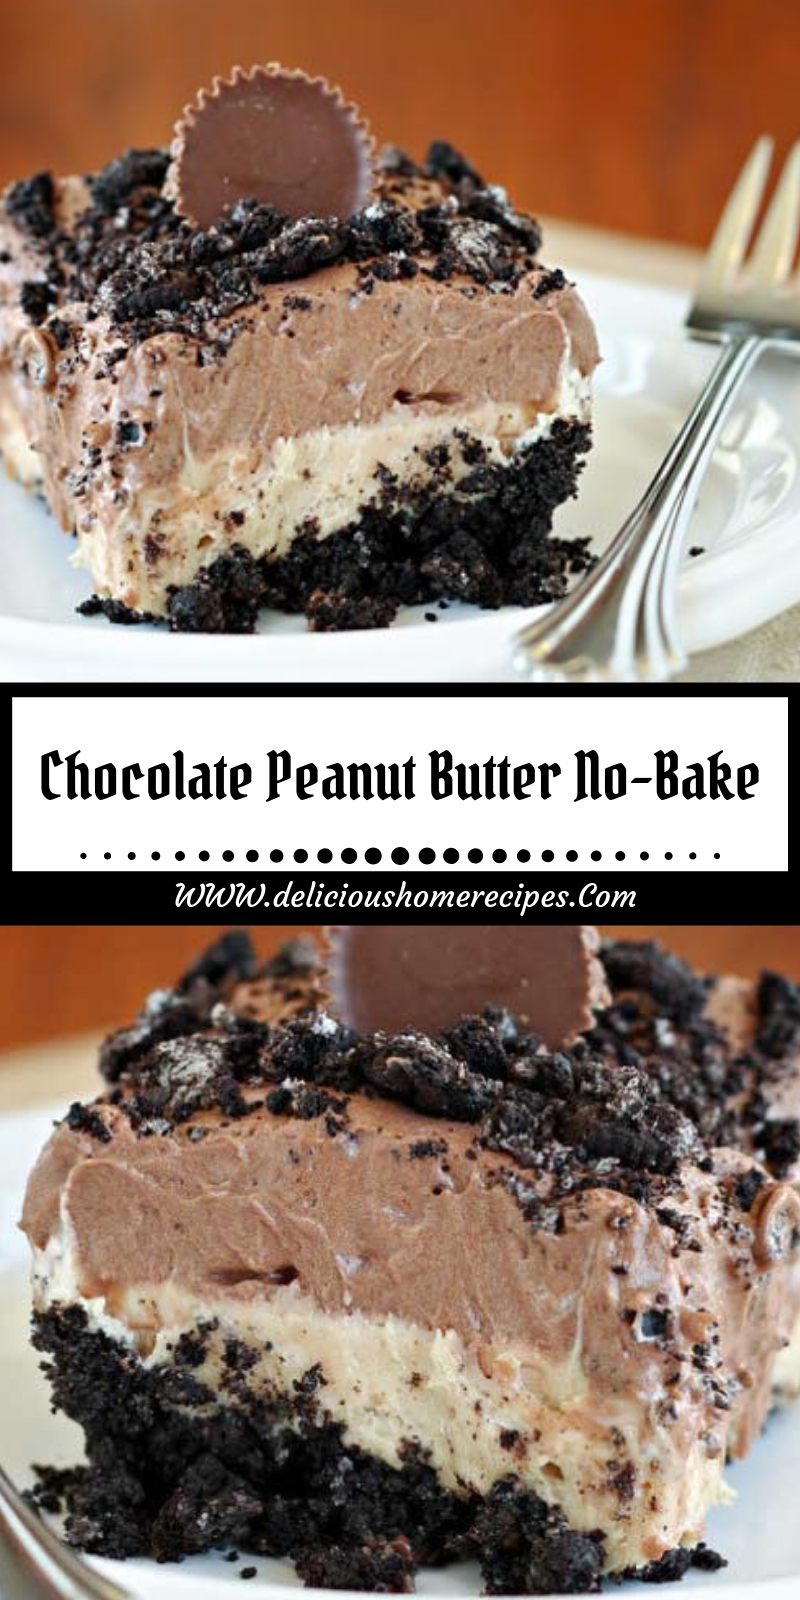 Chocolate Peanut Butter No-Bake